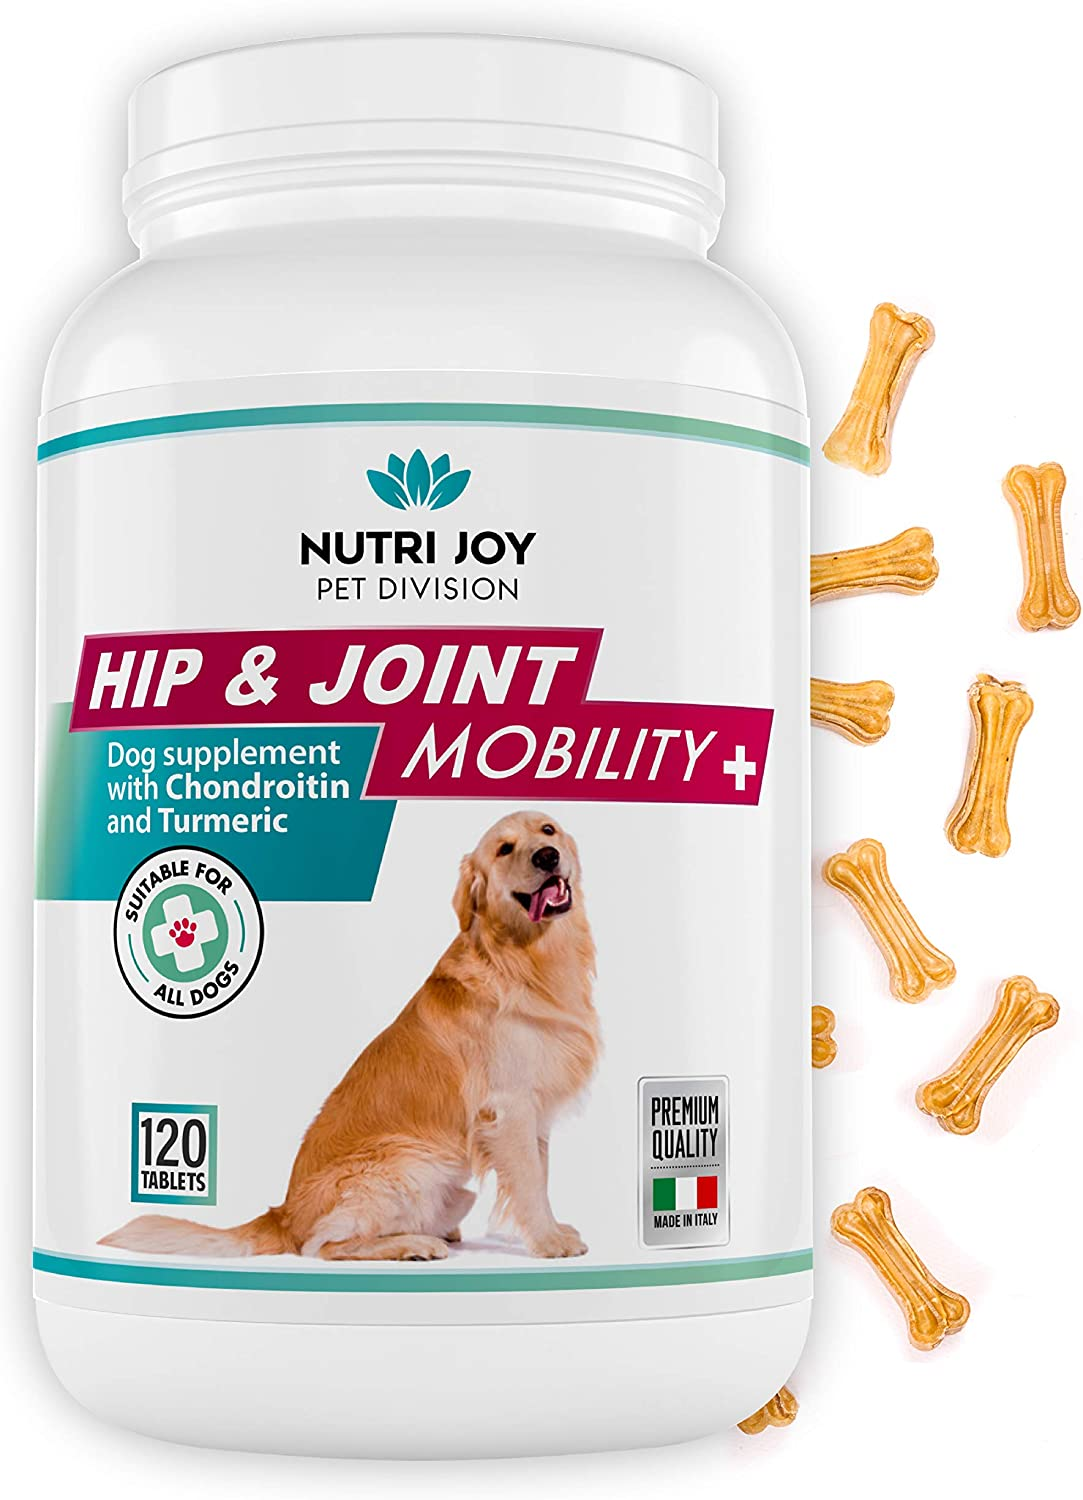 Hip & Joint Mobility